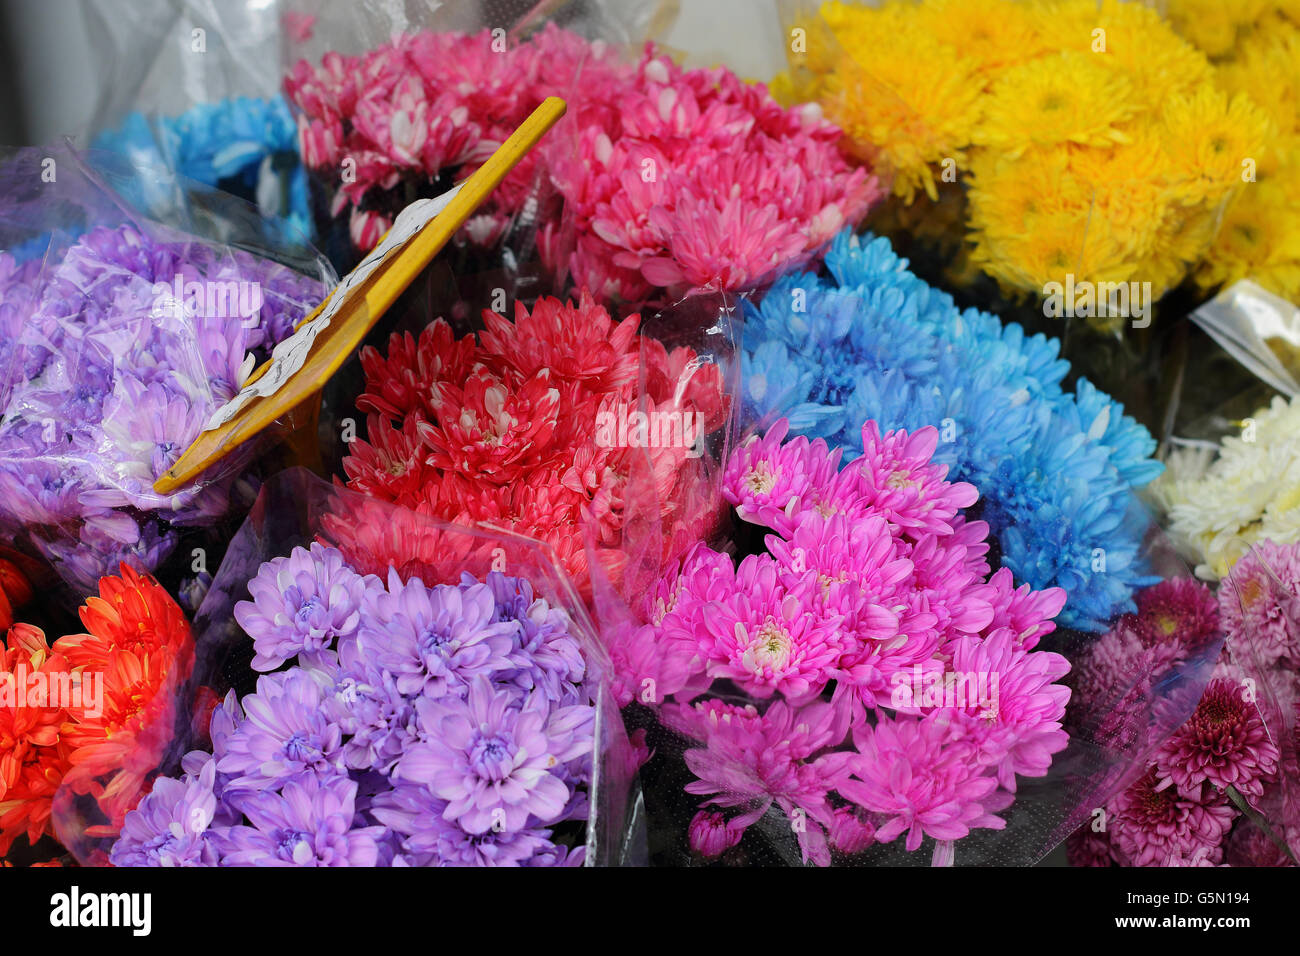 Close up of fresh colorful chrysanthemum daisies spring flowers Stock Photo